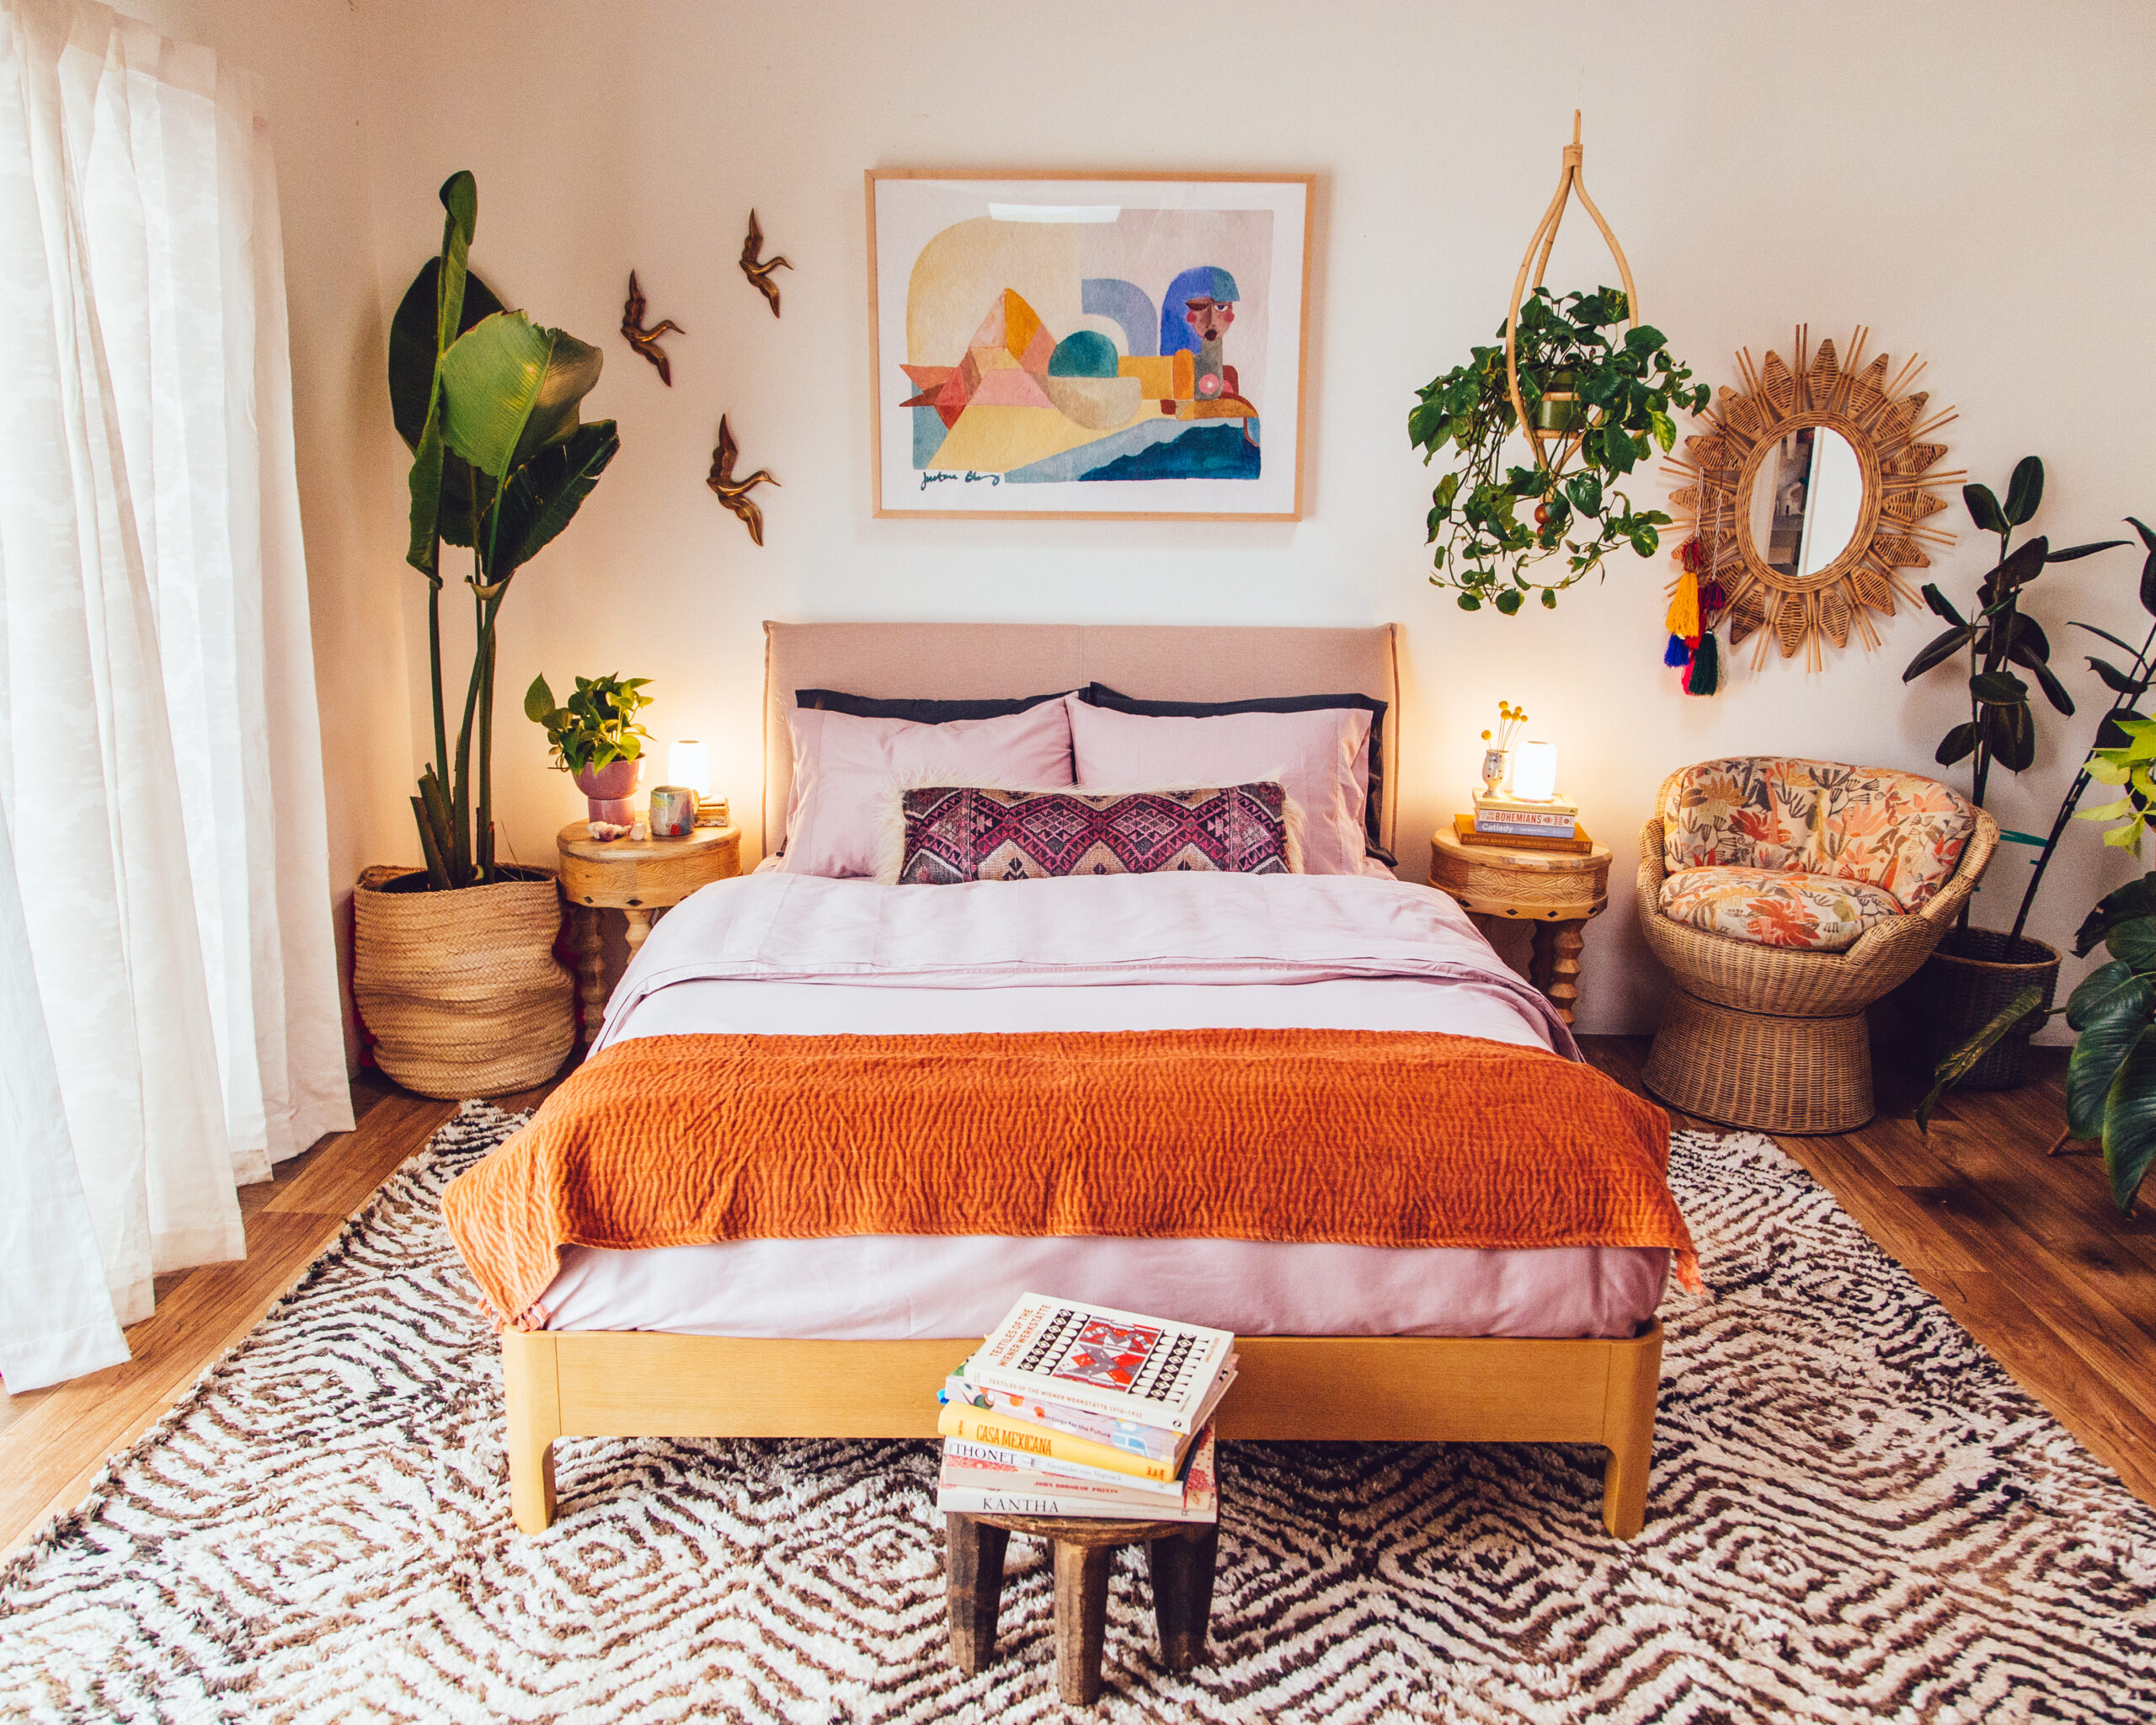 colorful bedroom with plants, pink sheets, and a printed rug